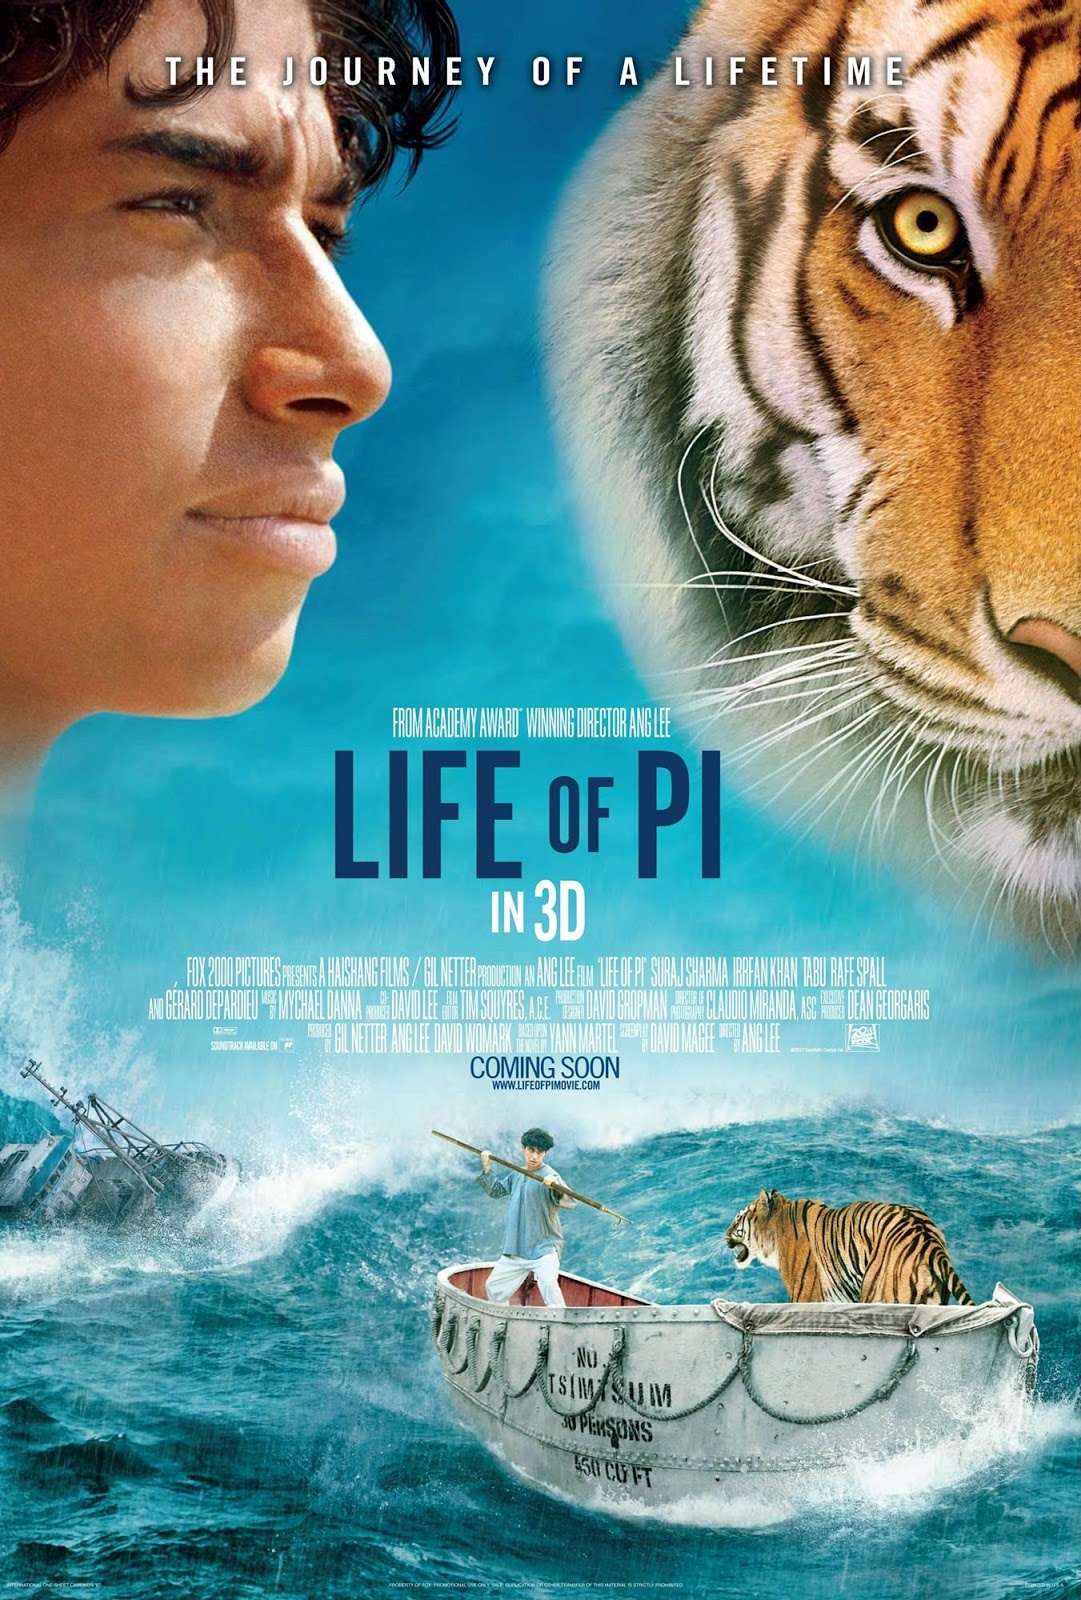 is the life of pi real